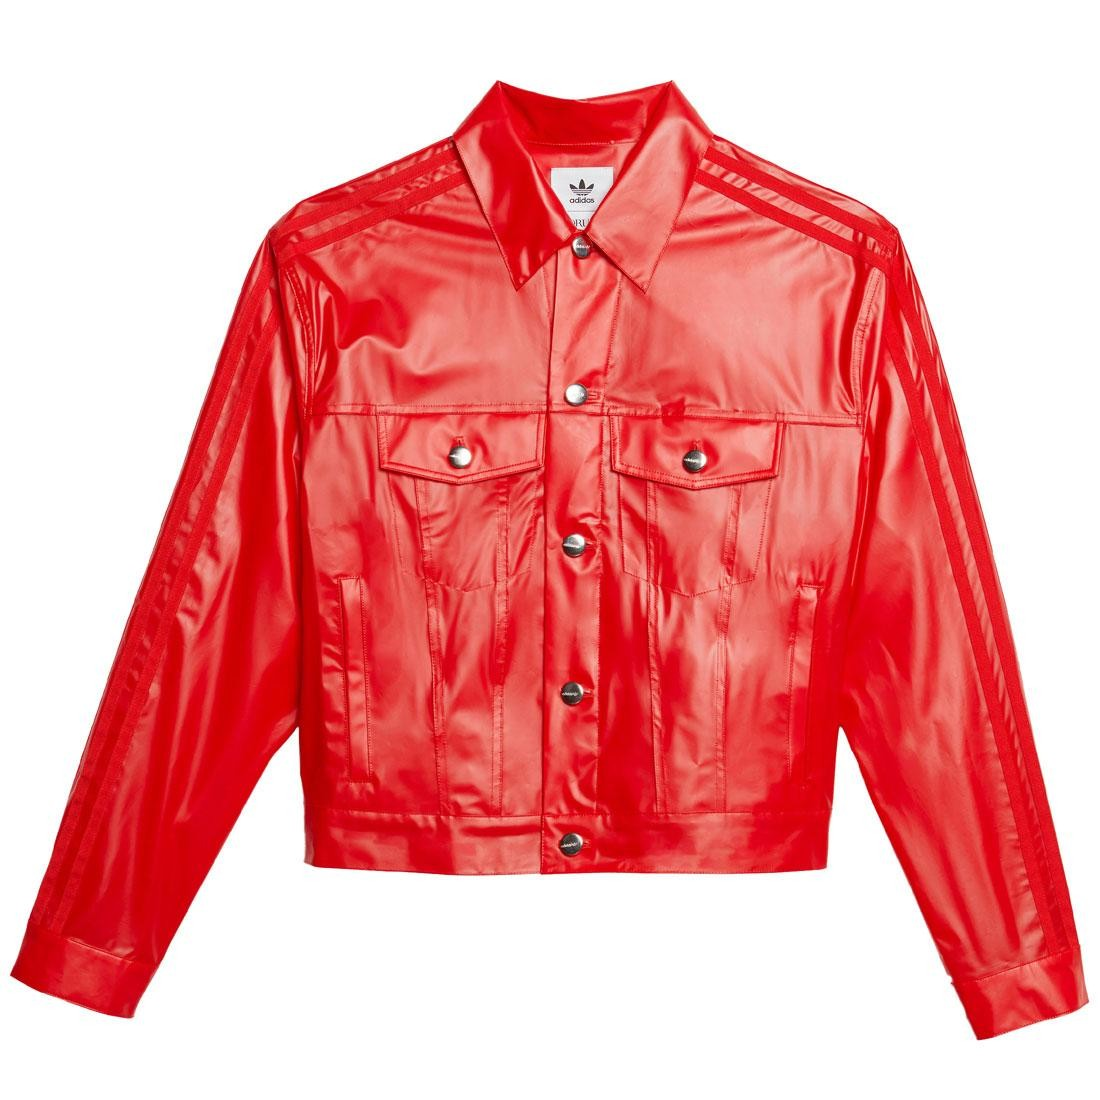 Adidas x Fiorucci Women Kiss Jacket (red)